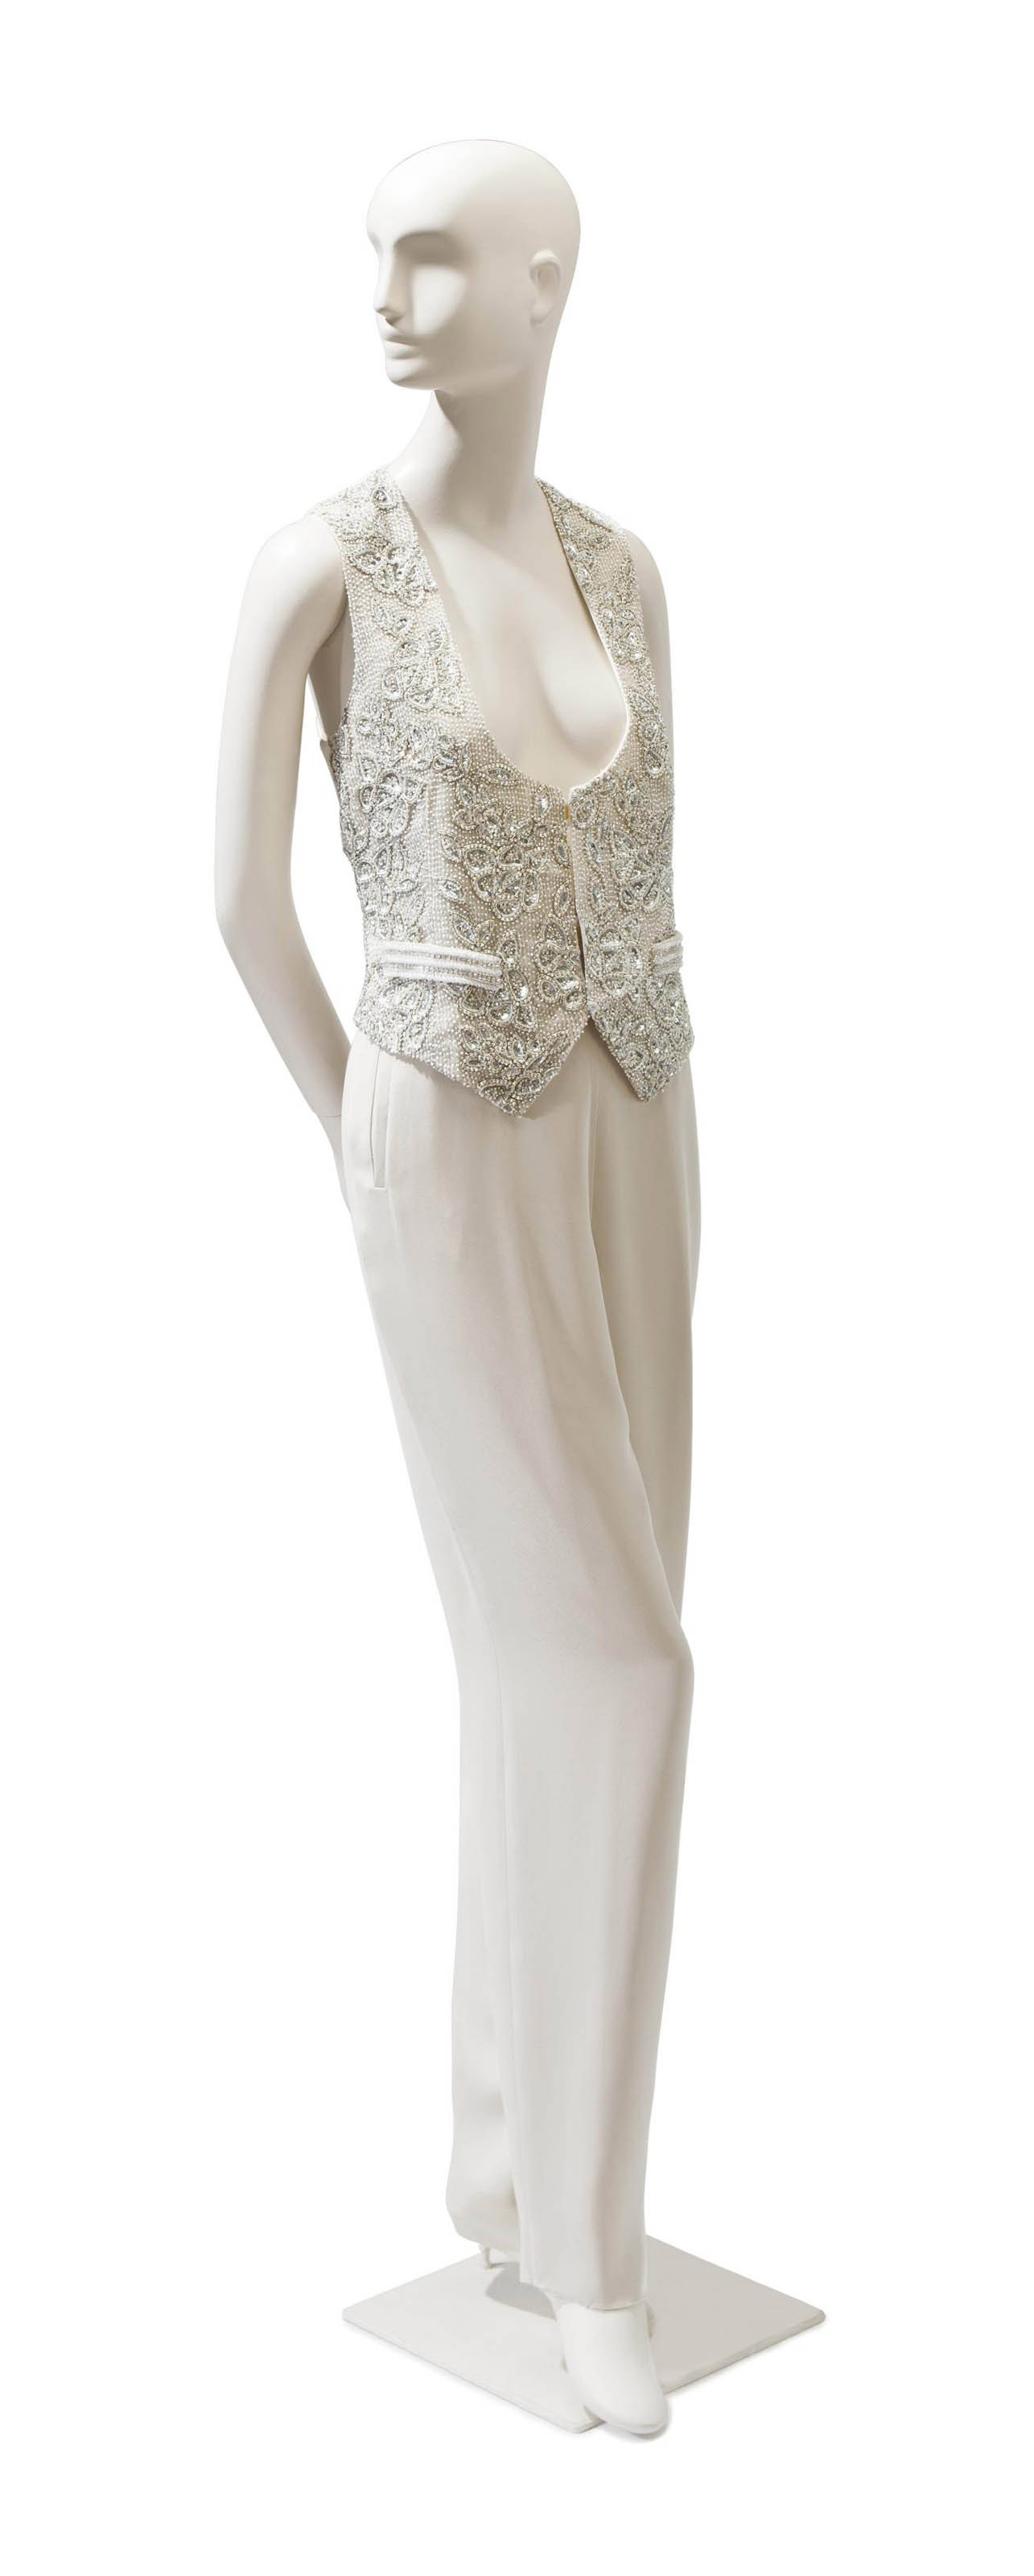 A GIORGIO ARMANI SILVER AND WHITE SEQUINNED AND BEADED WAISTCOAT VEST WITH SILK TROUSERS